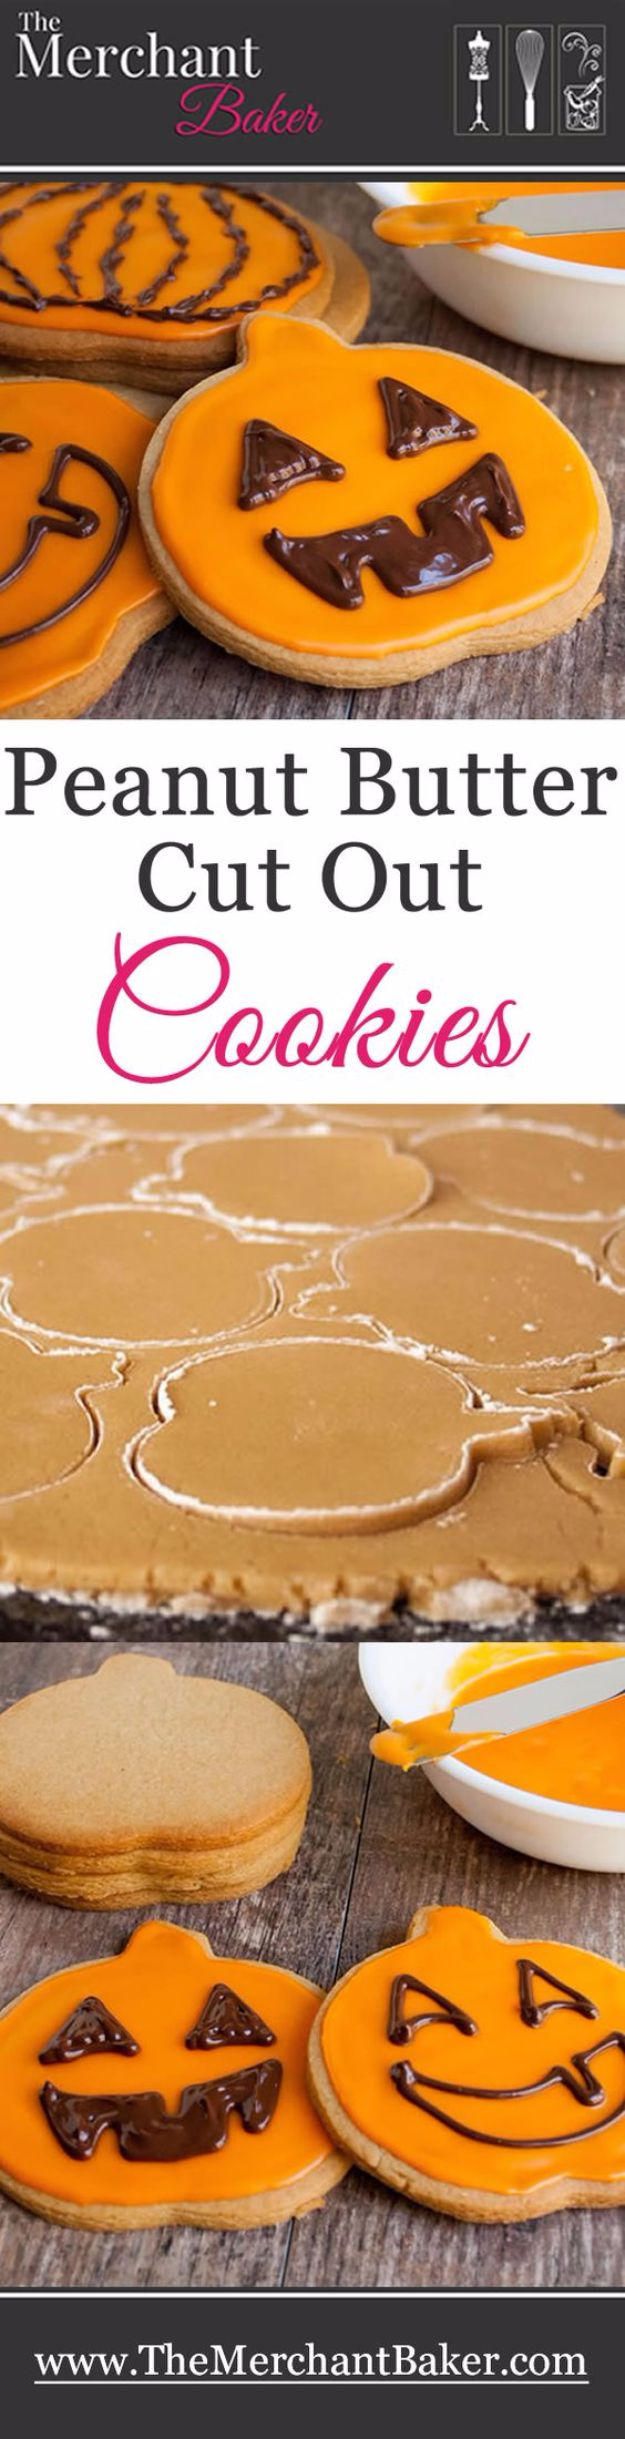 Cute Halloween Cookies - Peanut Butter Cut Out Cookies - Easy Recipes and Cookie Tutorials for Making Quick Halloween Treats - Spooky DIY Decorated Ghosts, Pumpkins, Bats, No Bake, Spiders and Spiderwebs, Tombstones and Healthy Options, Kids and Teens Cookies for School http://diyjoy.com/halloween-cookies-ideas